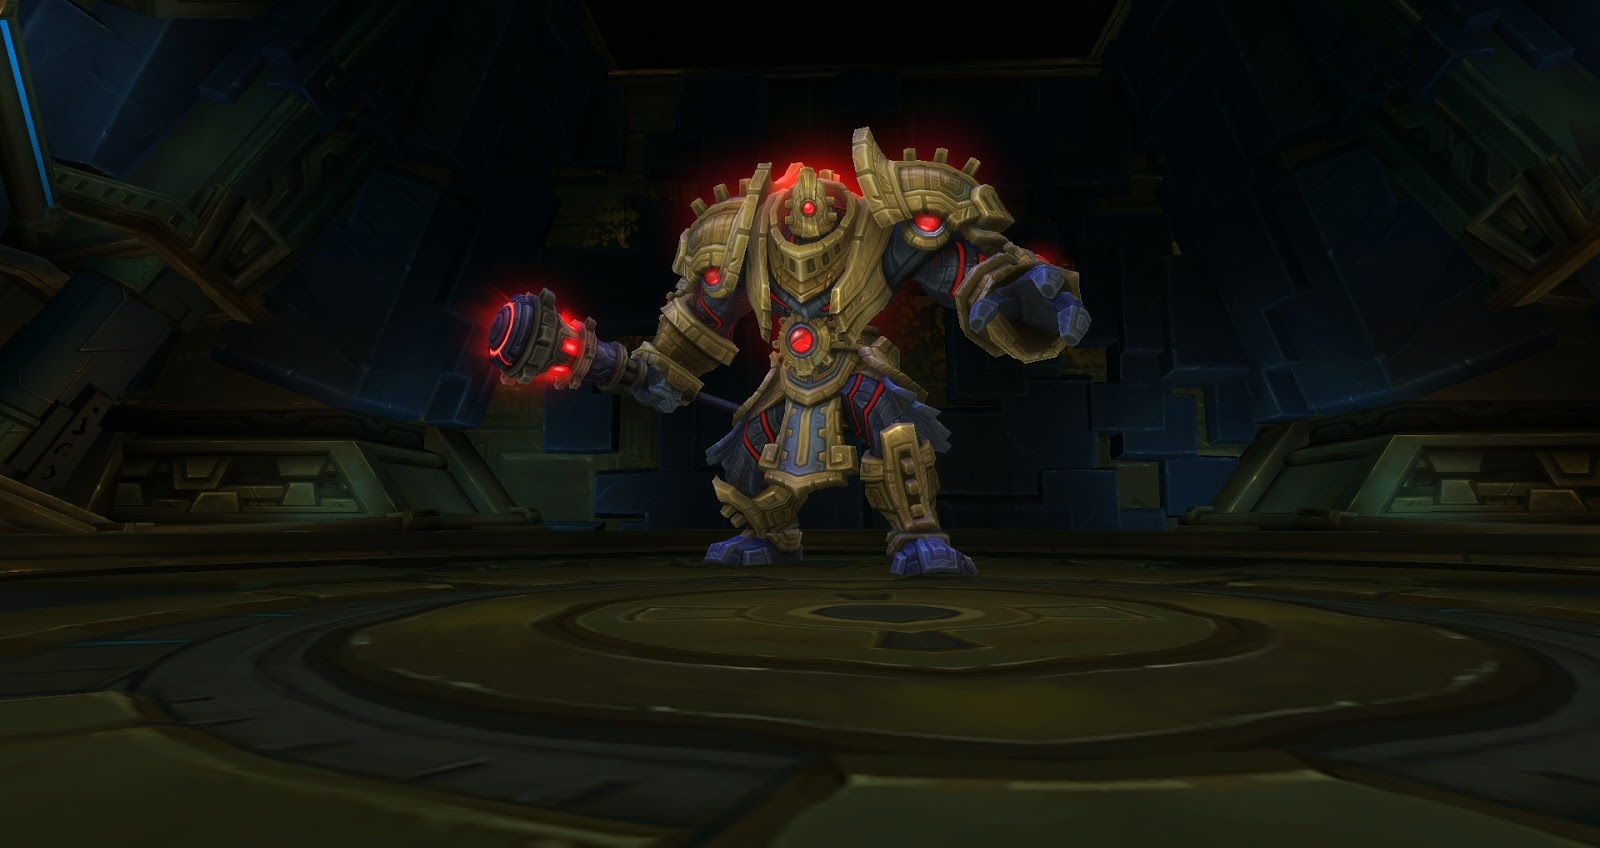 WoW Uldir raid leveling guide in Battle for Azeroth 8 1